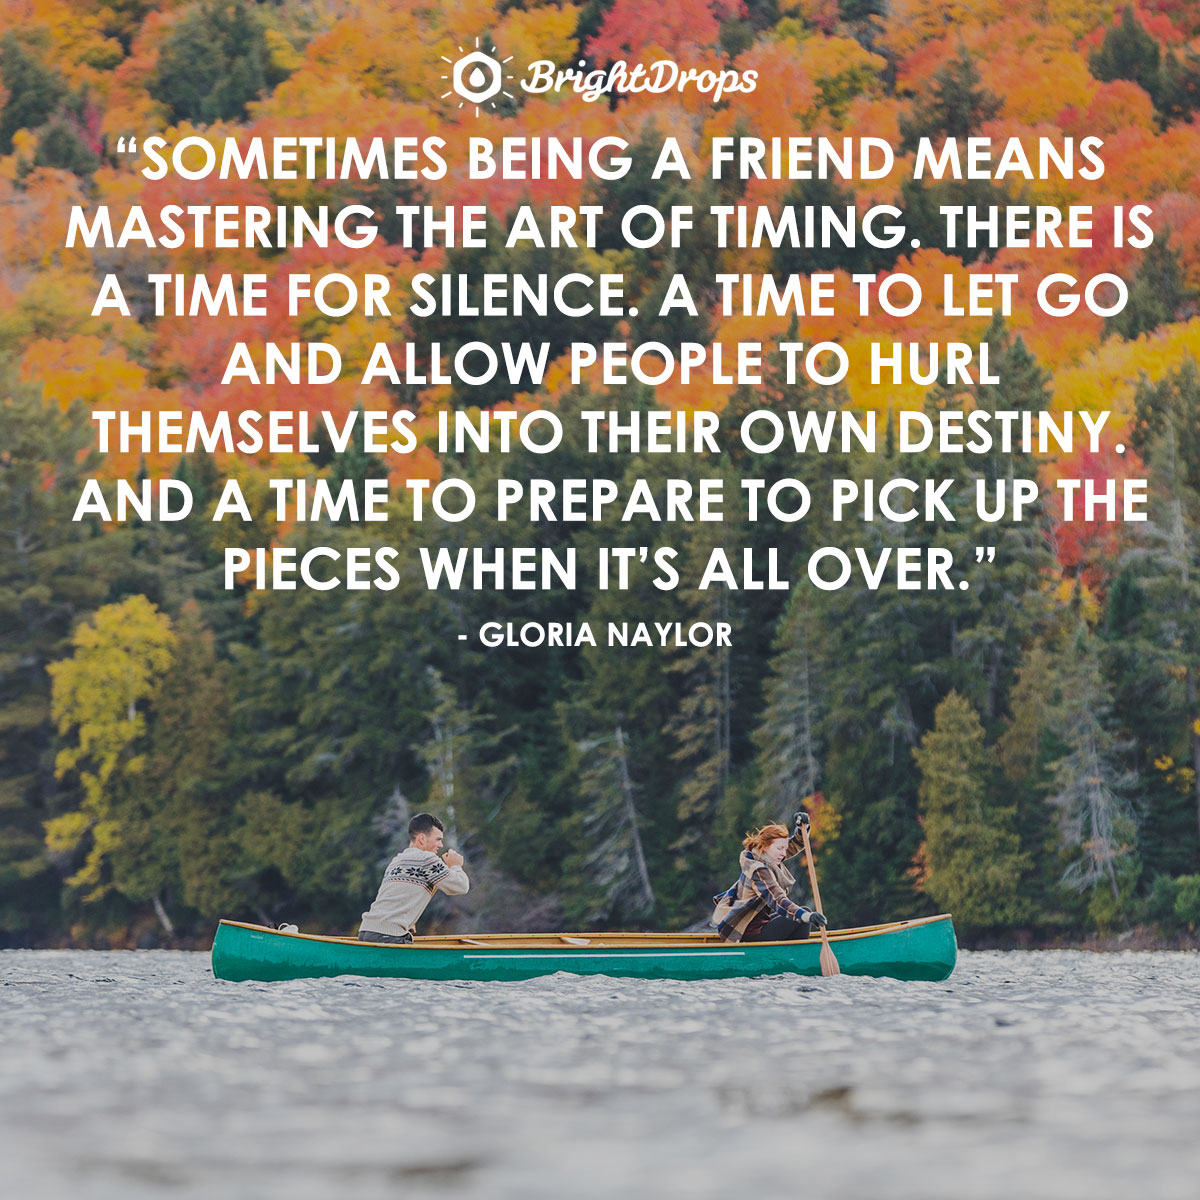 Sometimes being a friend means mastering the art of timing. There is a time for silence. A time to let go and allow people to hurl themselves into their own destiny. And a time to prepare to pick up the pieces when it's all over. - Gloria Naylor